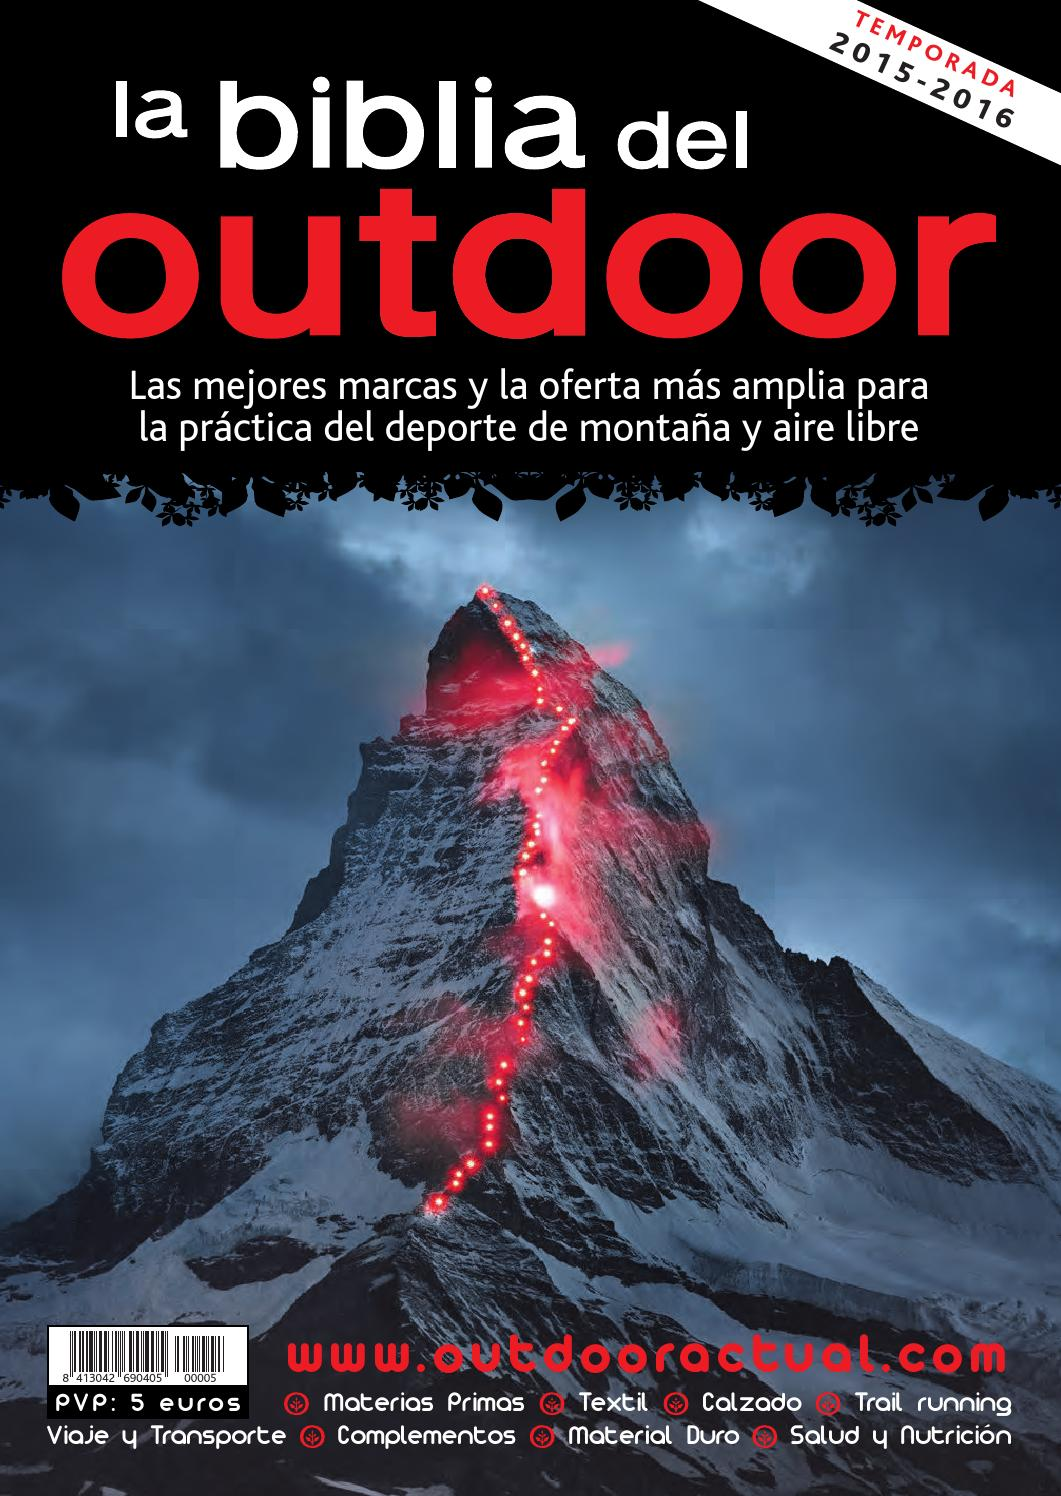 La Biblia del Outdoor 2015-16 by Outdoor Actual - issuu ce9faff0a41